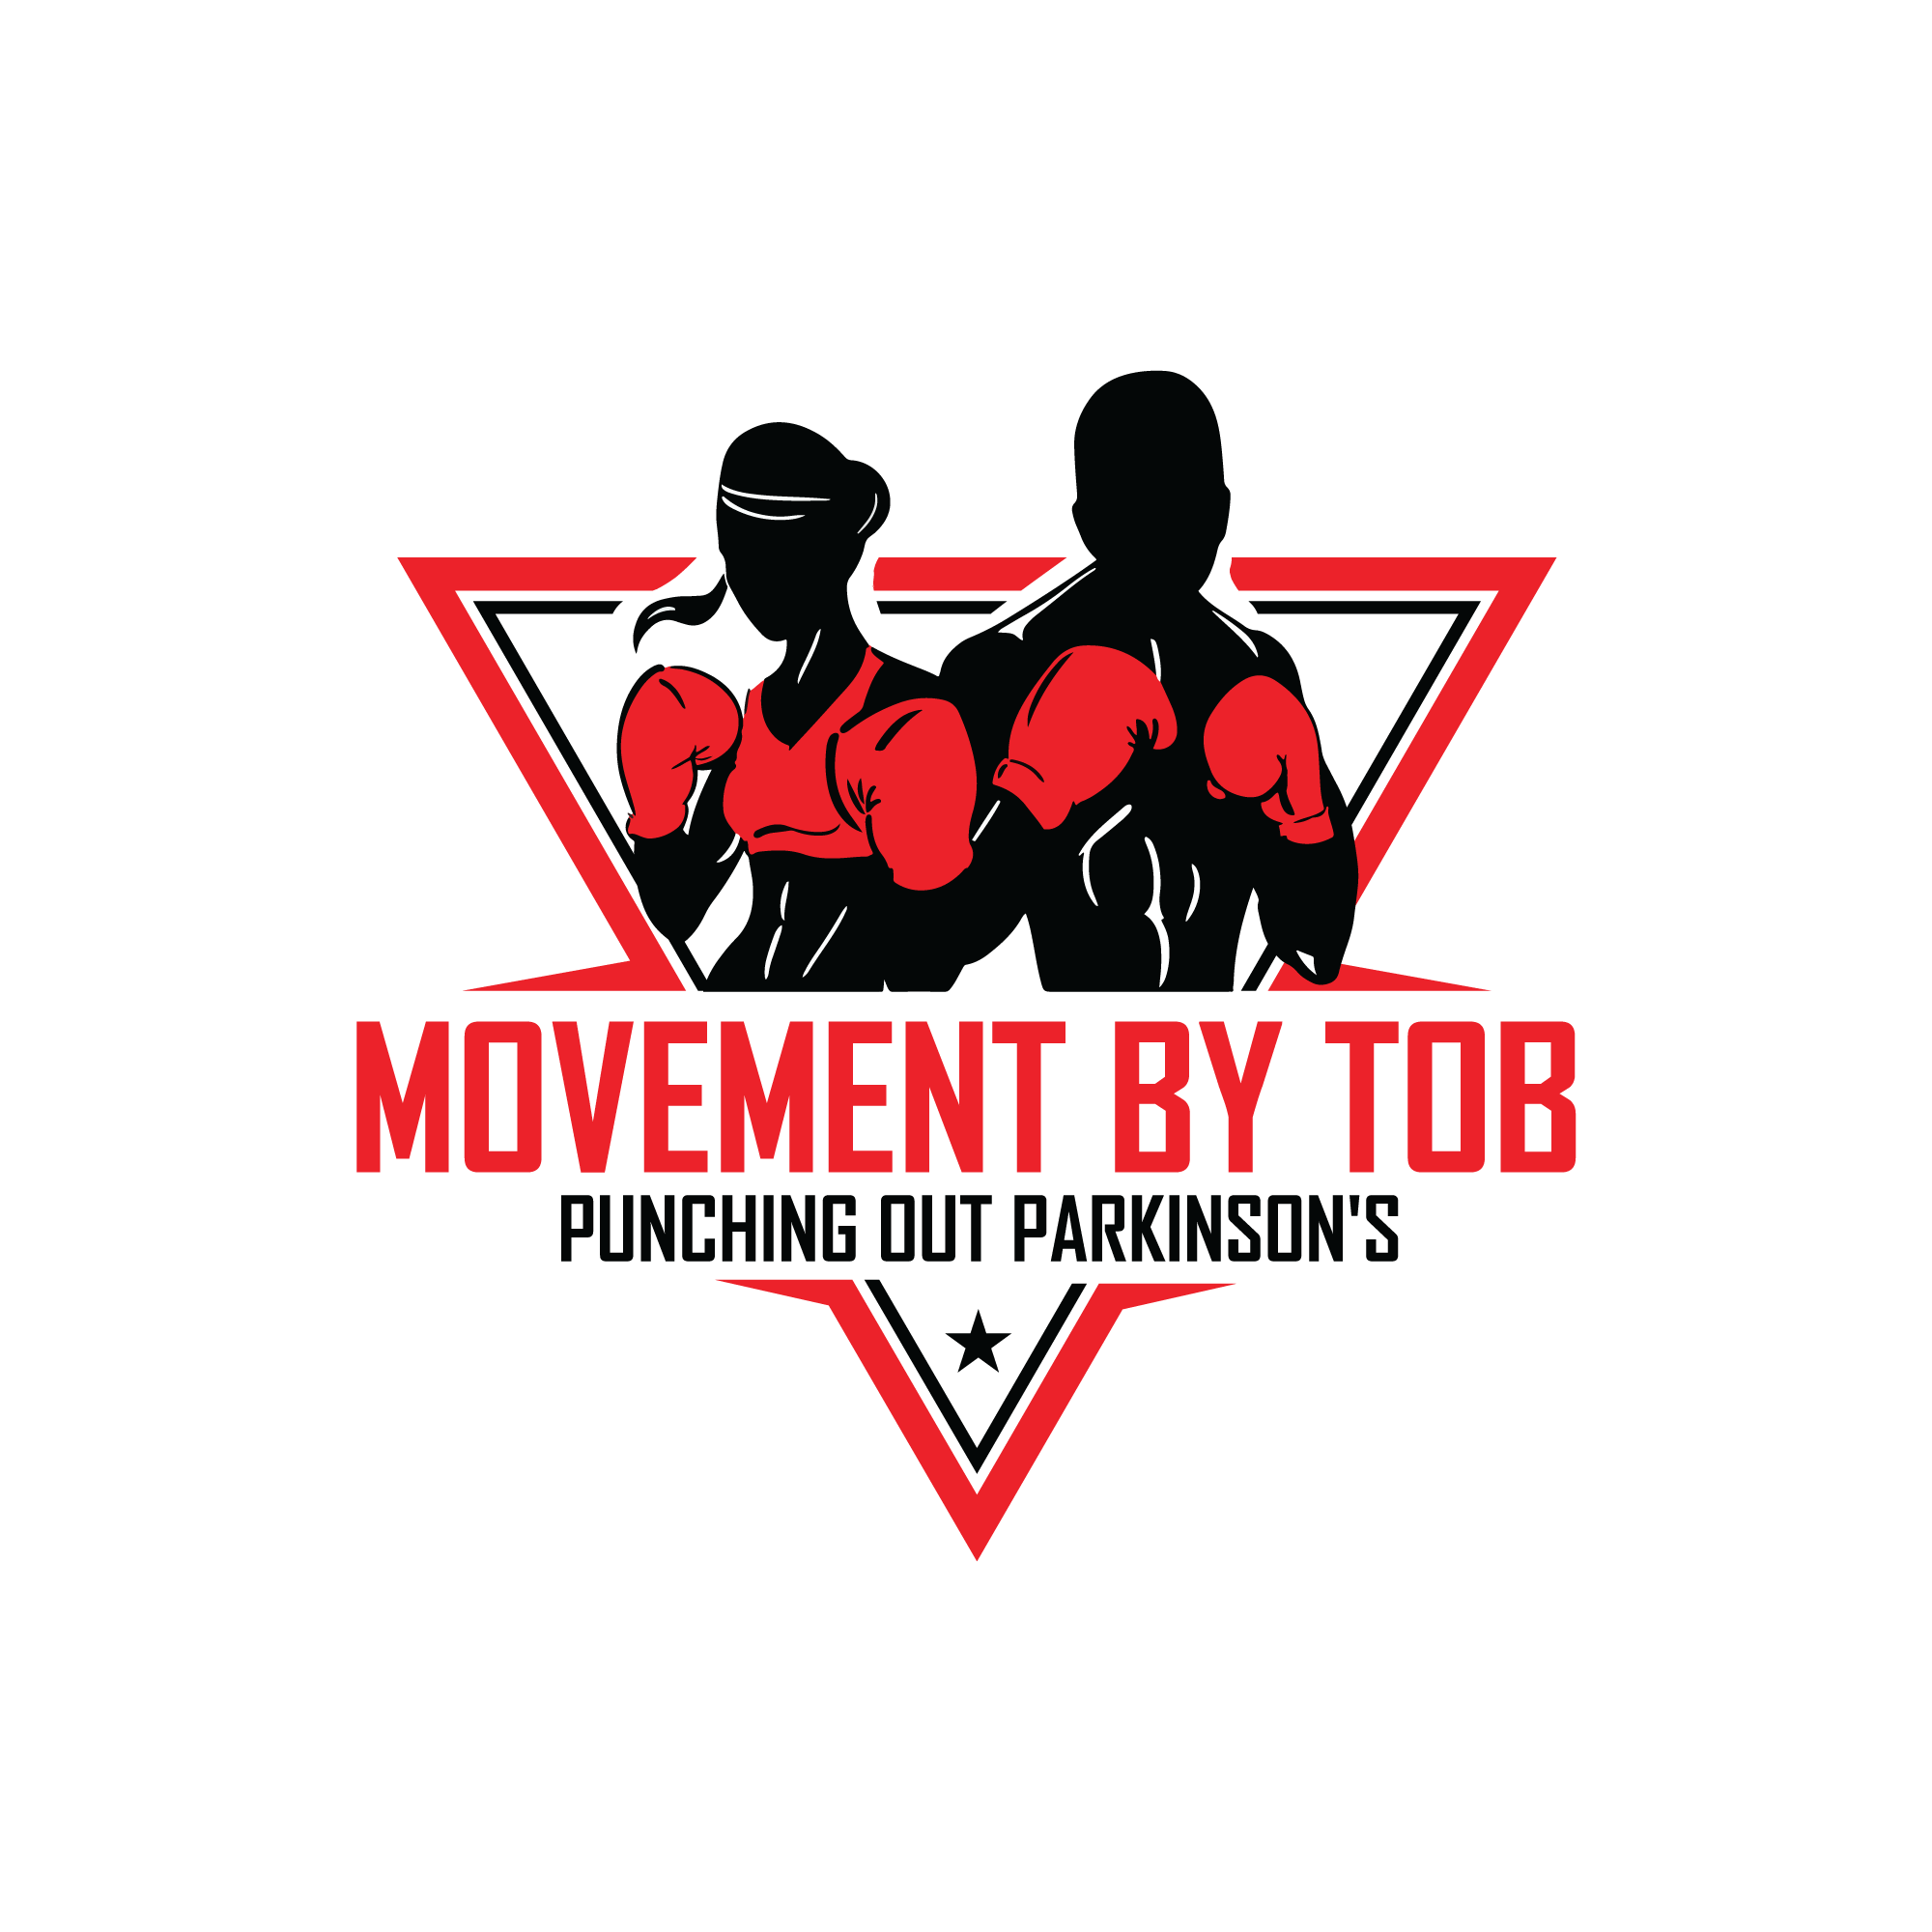 Movement by TOB